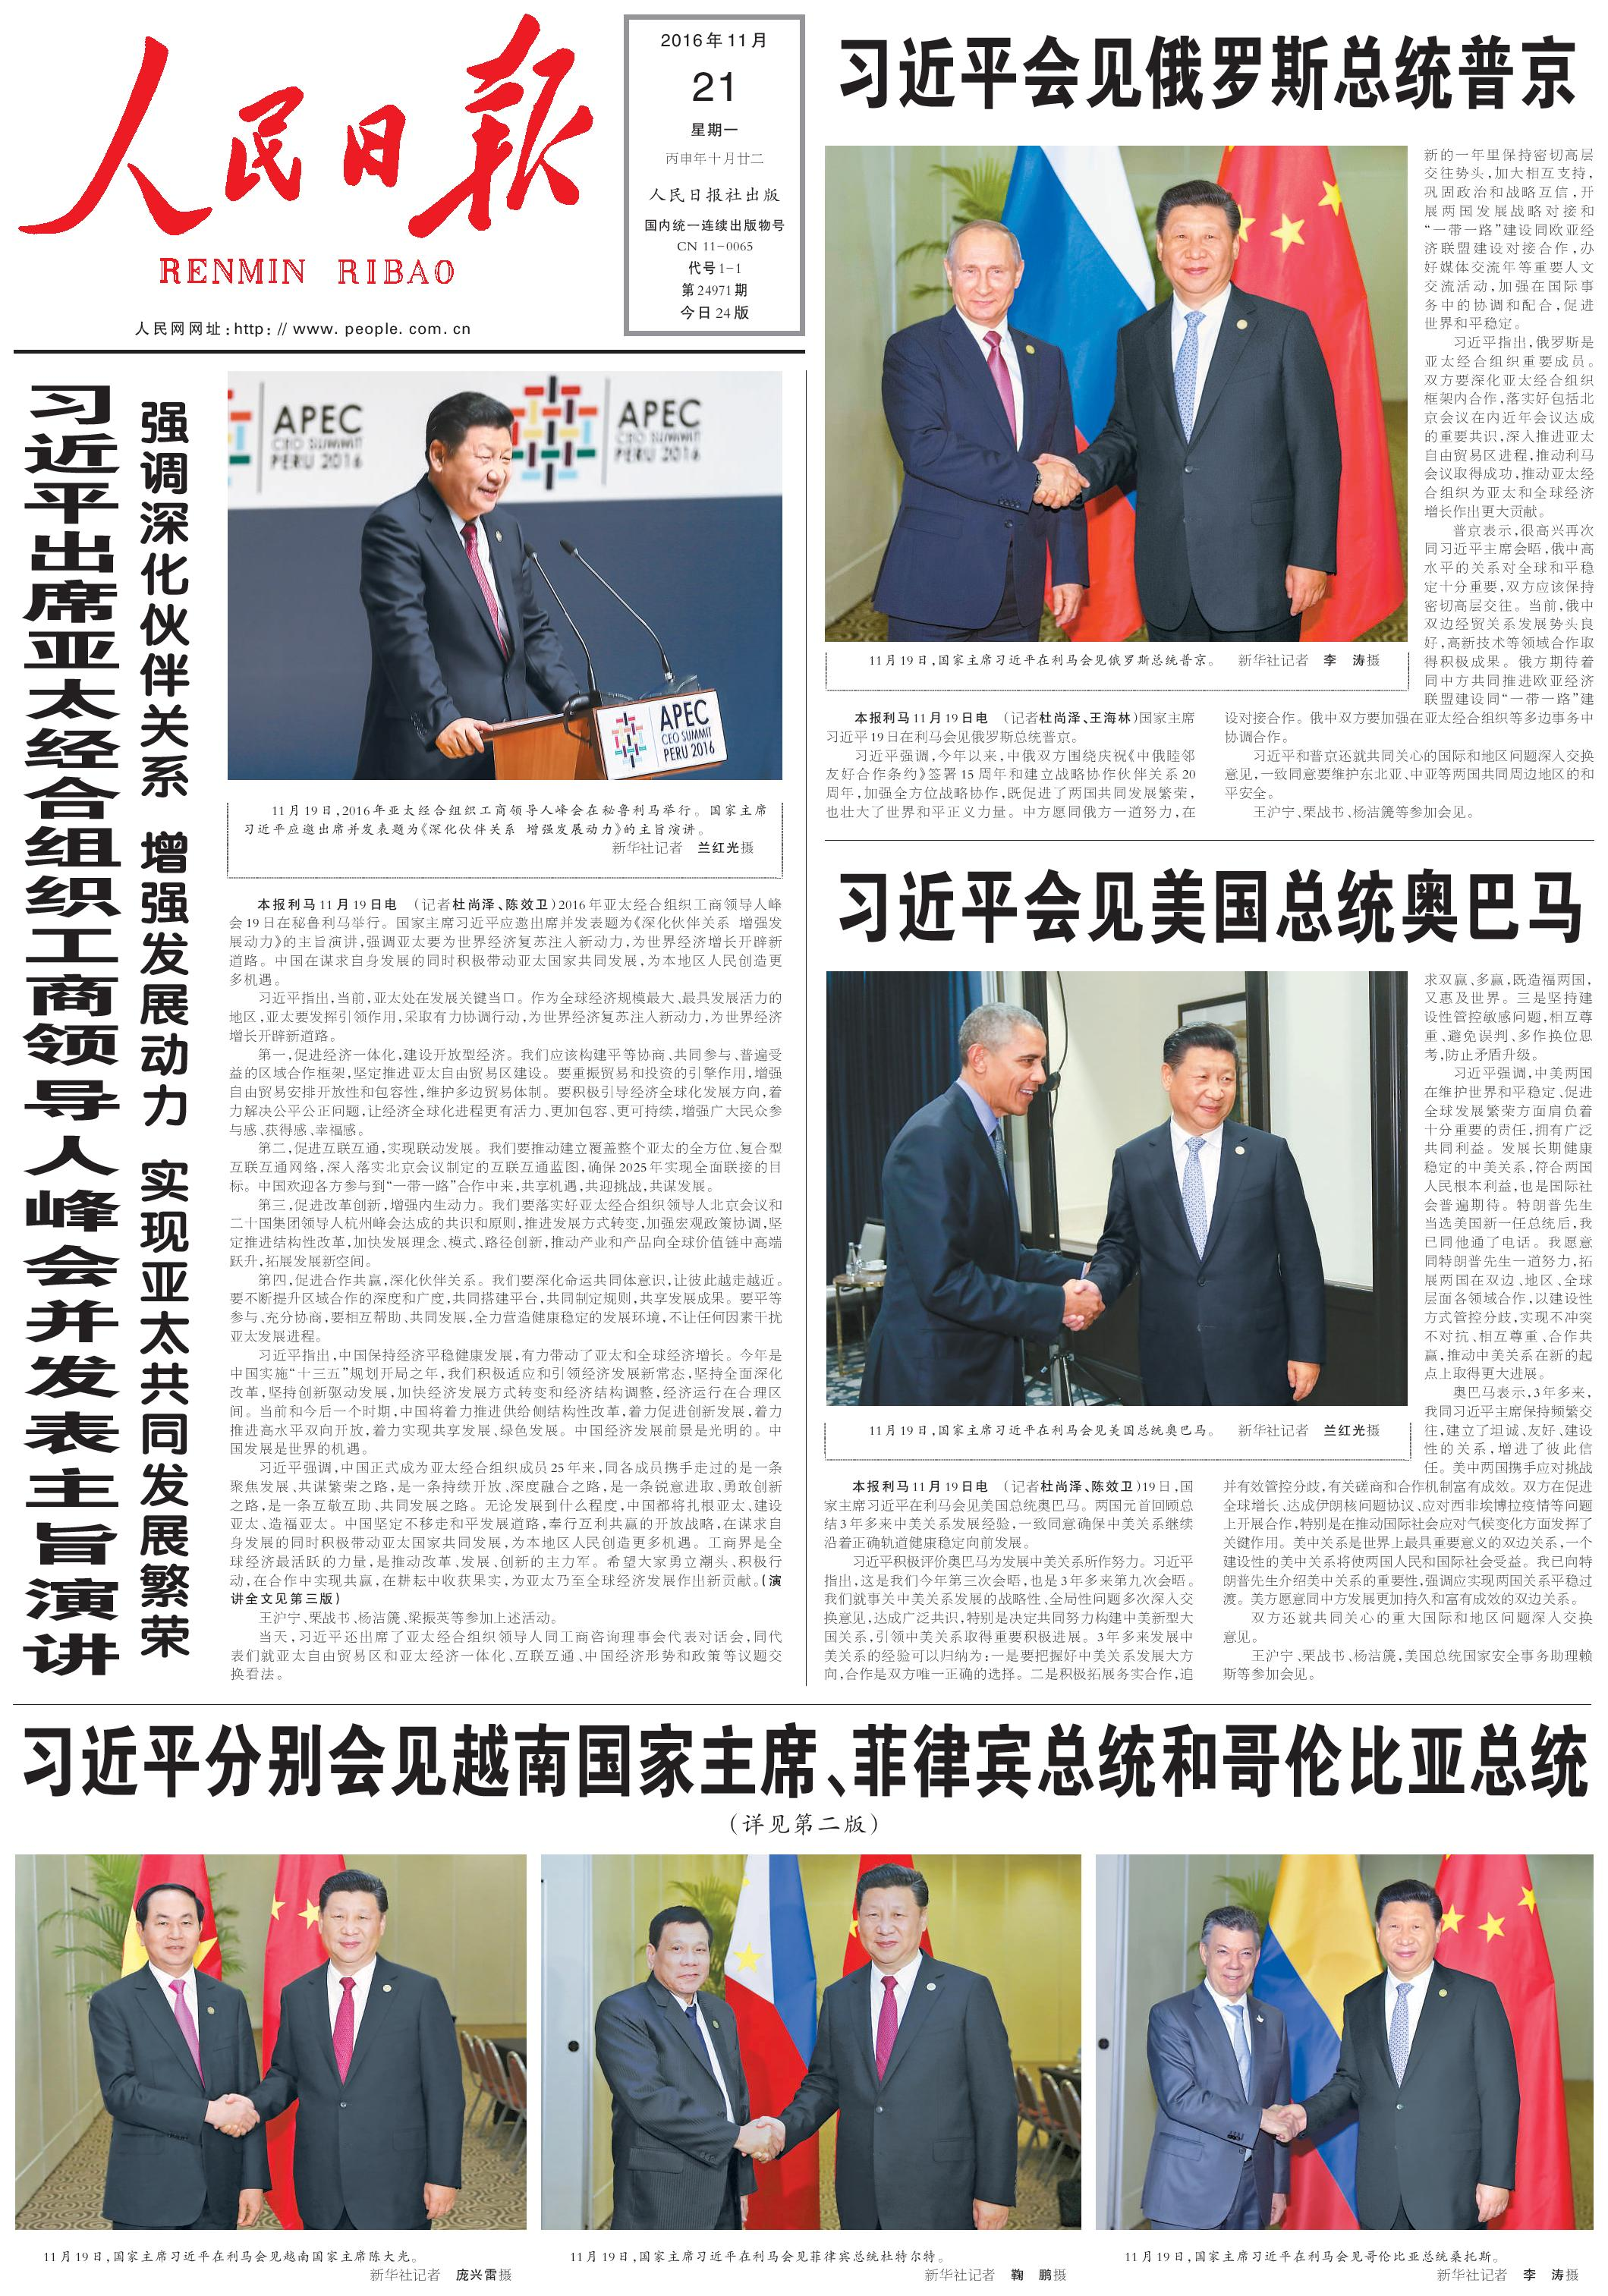 Xi Jinping met with heads of state ahead of the Apec meeting in Lima, Peru, via People's Daily